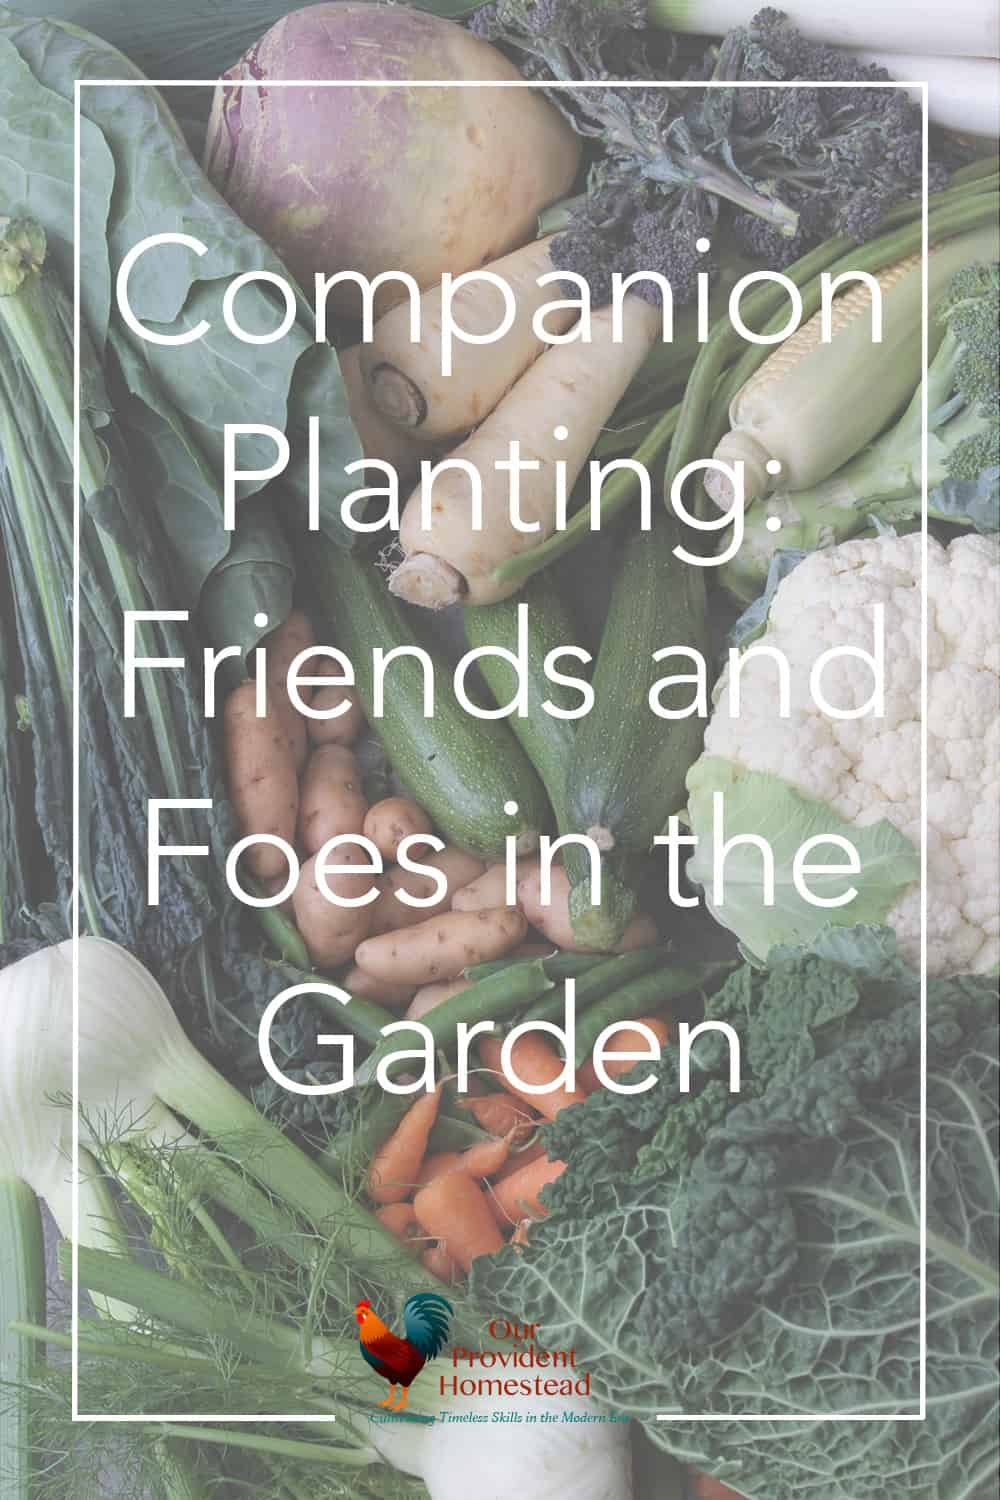 Do you want to have the best harvest from your garden? Companion planting helps increase harvest and deter pests by planting certain plants together. #gardening #garden #gardeningtips #companionplanting #homesteading